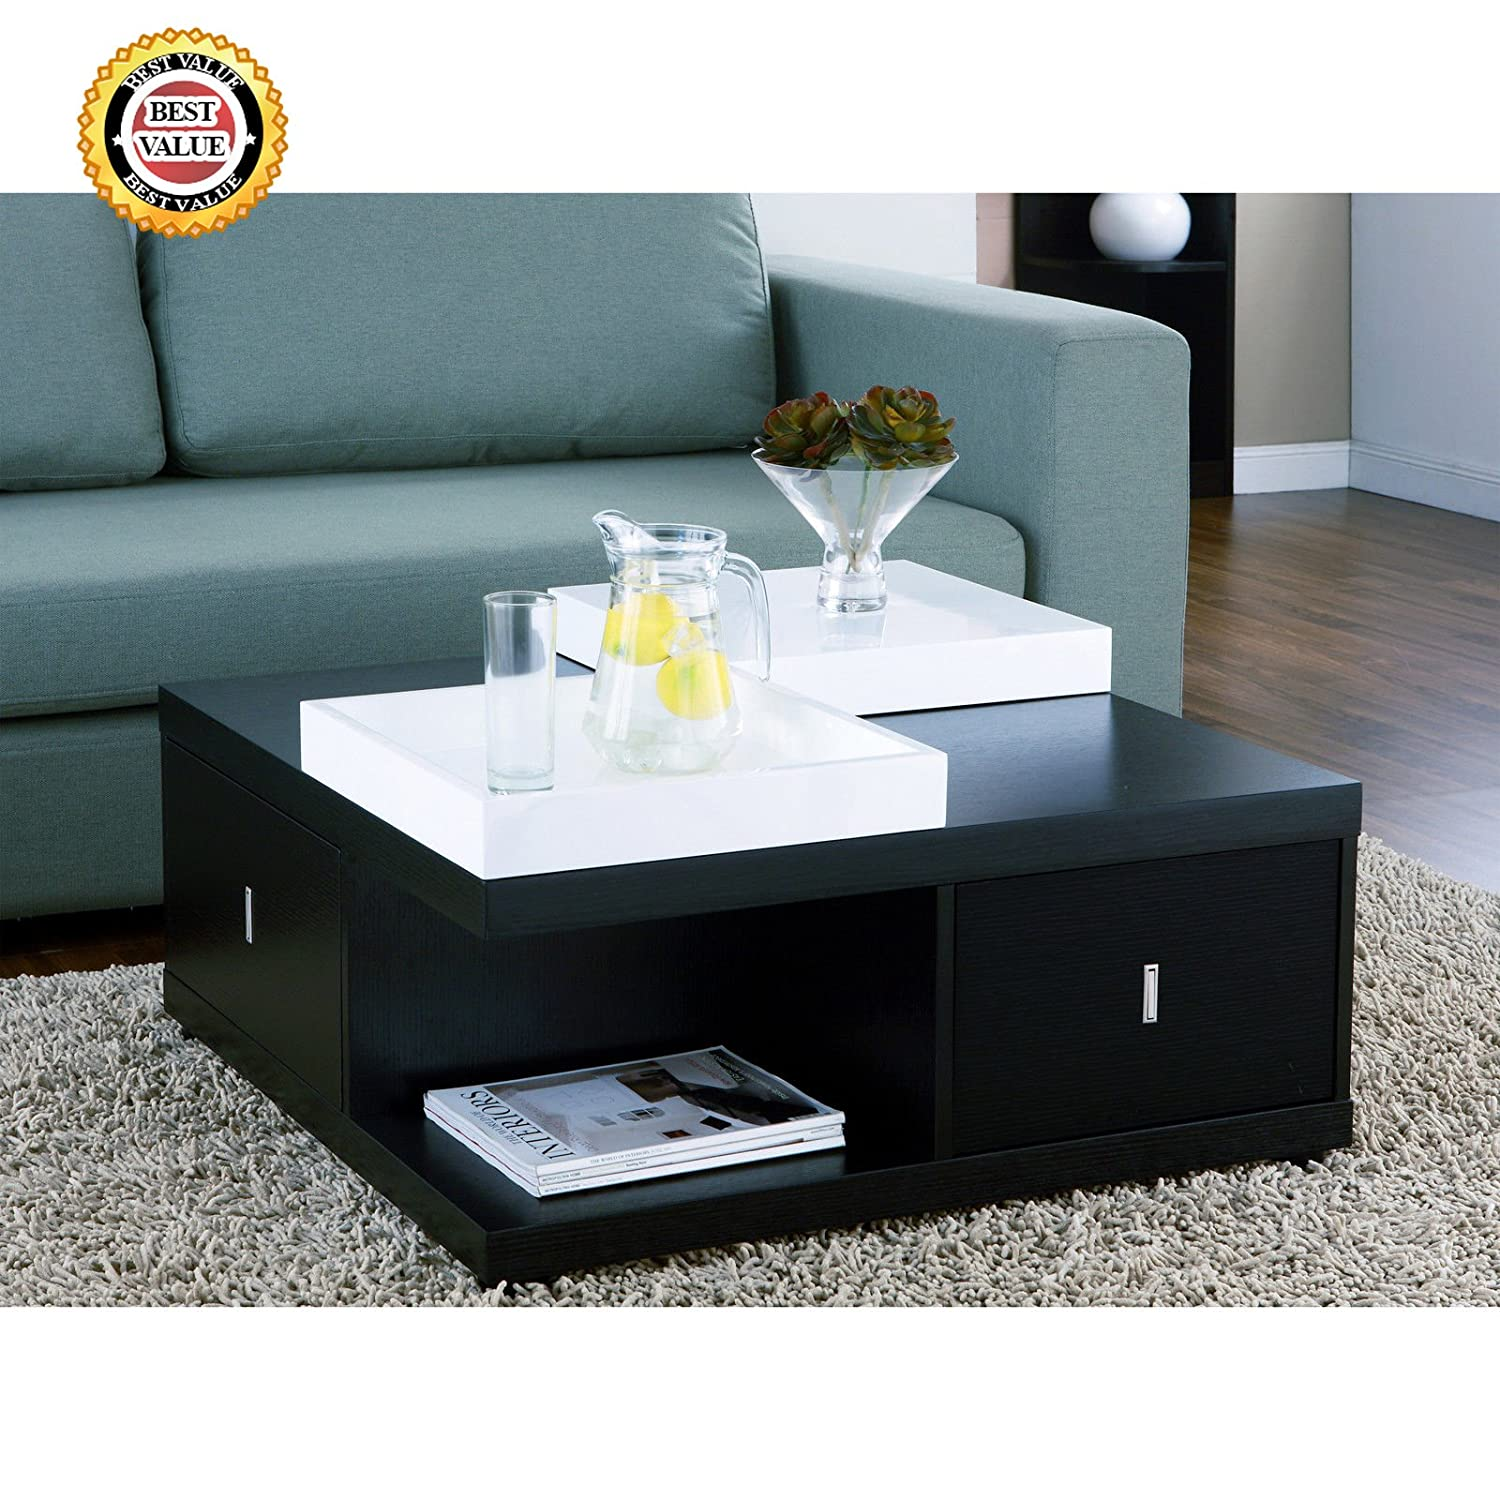 Charmant CONTEMPORARY, Modern, Black, Square Mareines Coffee Table With Storage U0026  White Serving Trays. ELEGANT Dark Wood Color U0026 Design Pairs Well With  Furniture Of ...